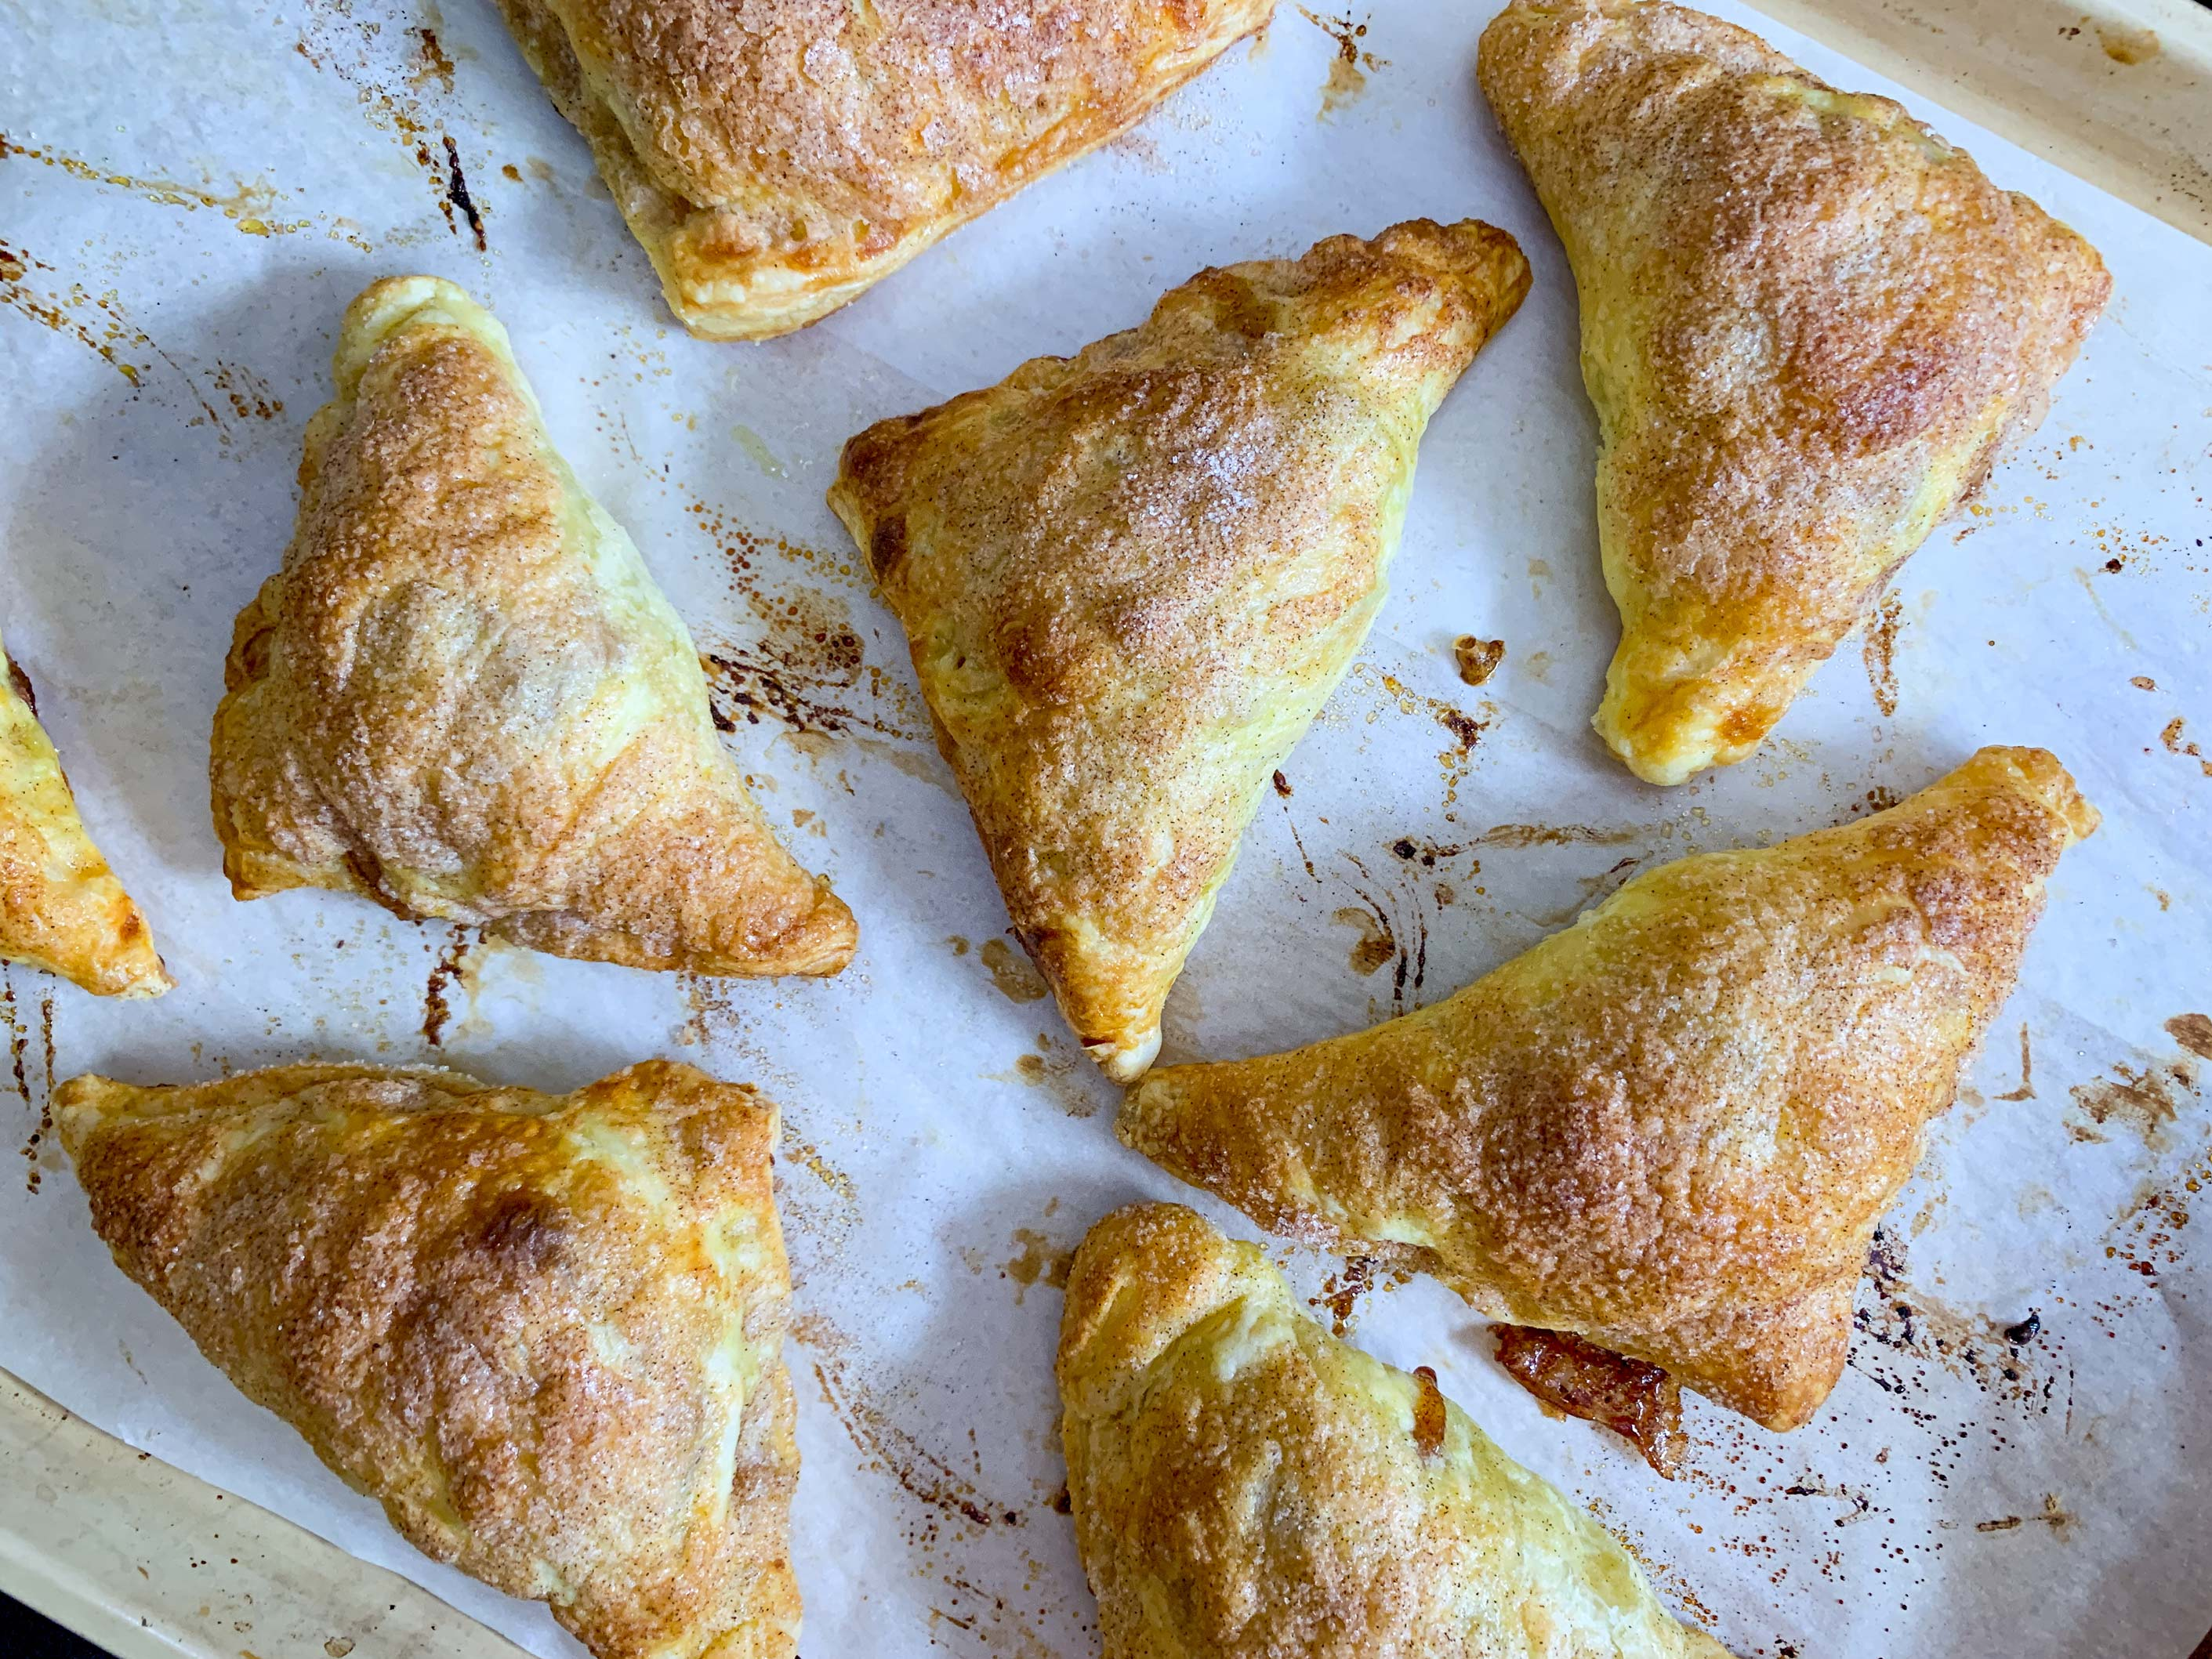 Fresh baked apple turnovers, cooling on a baking tray